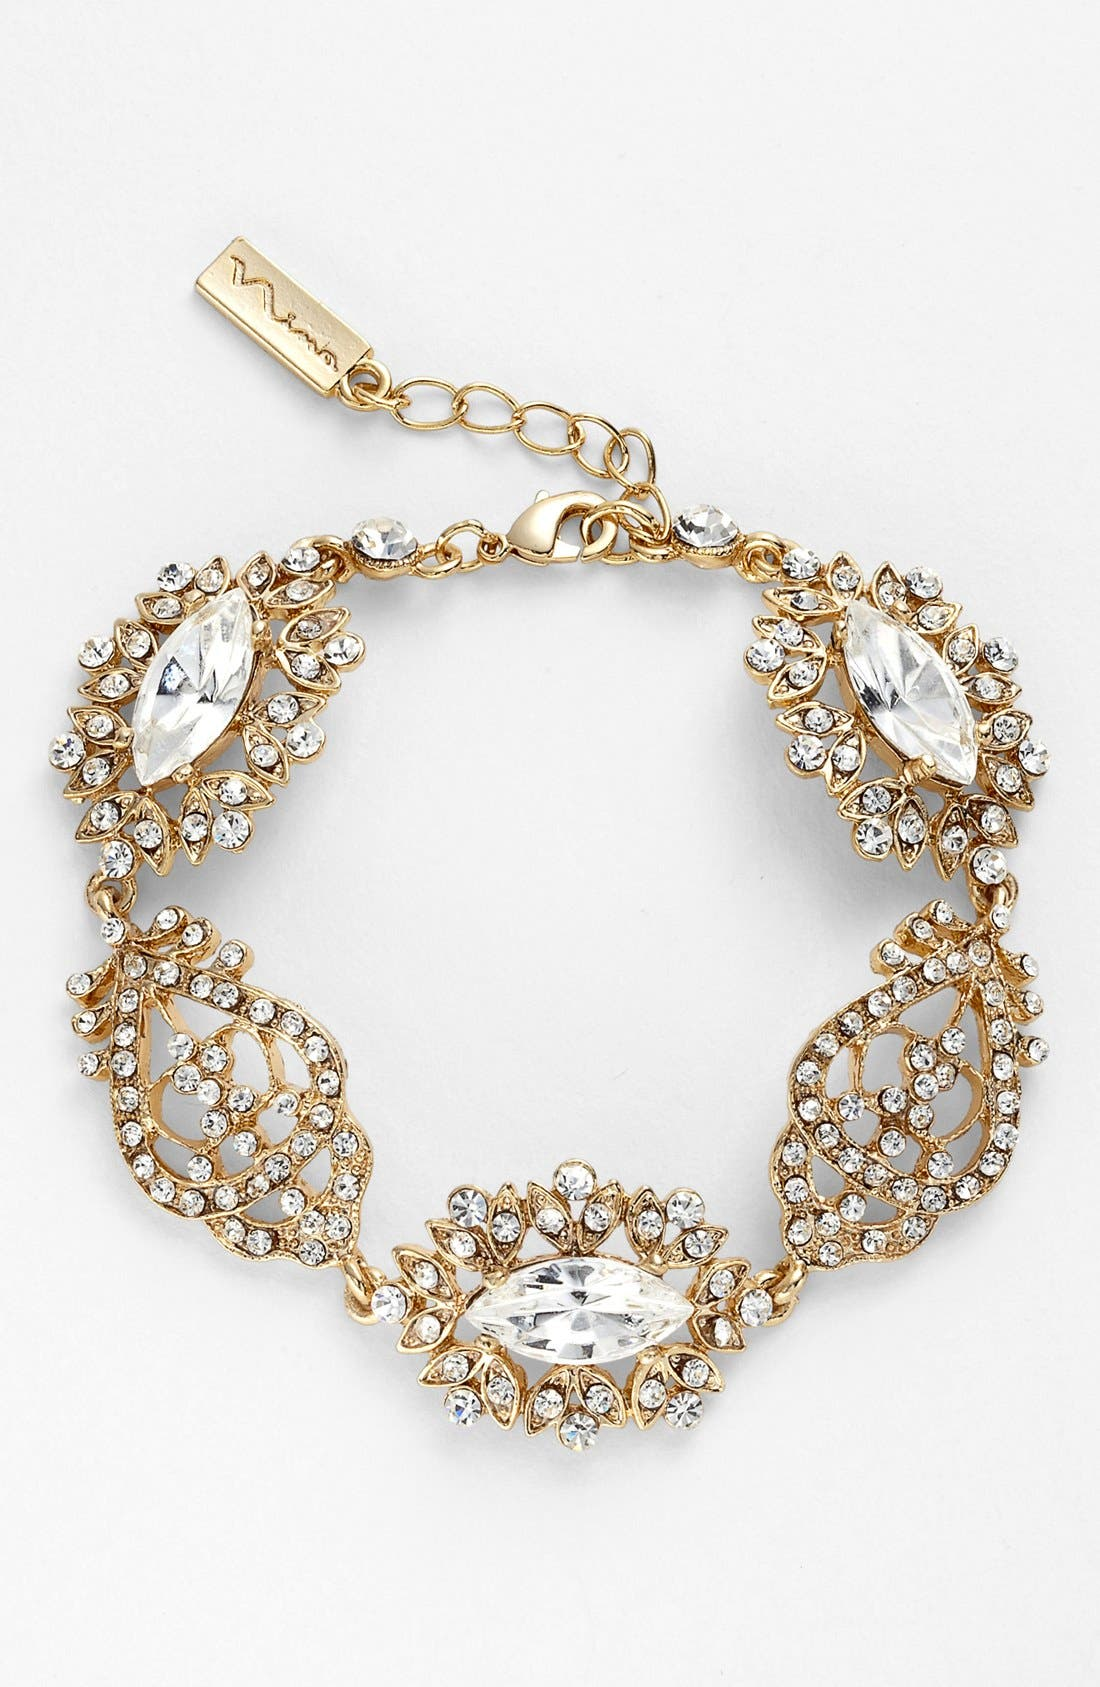 Main Image - Nina 'Chantal' Pavé Crystal Bracelet